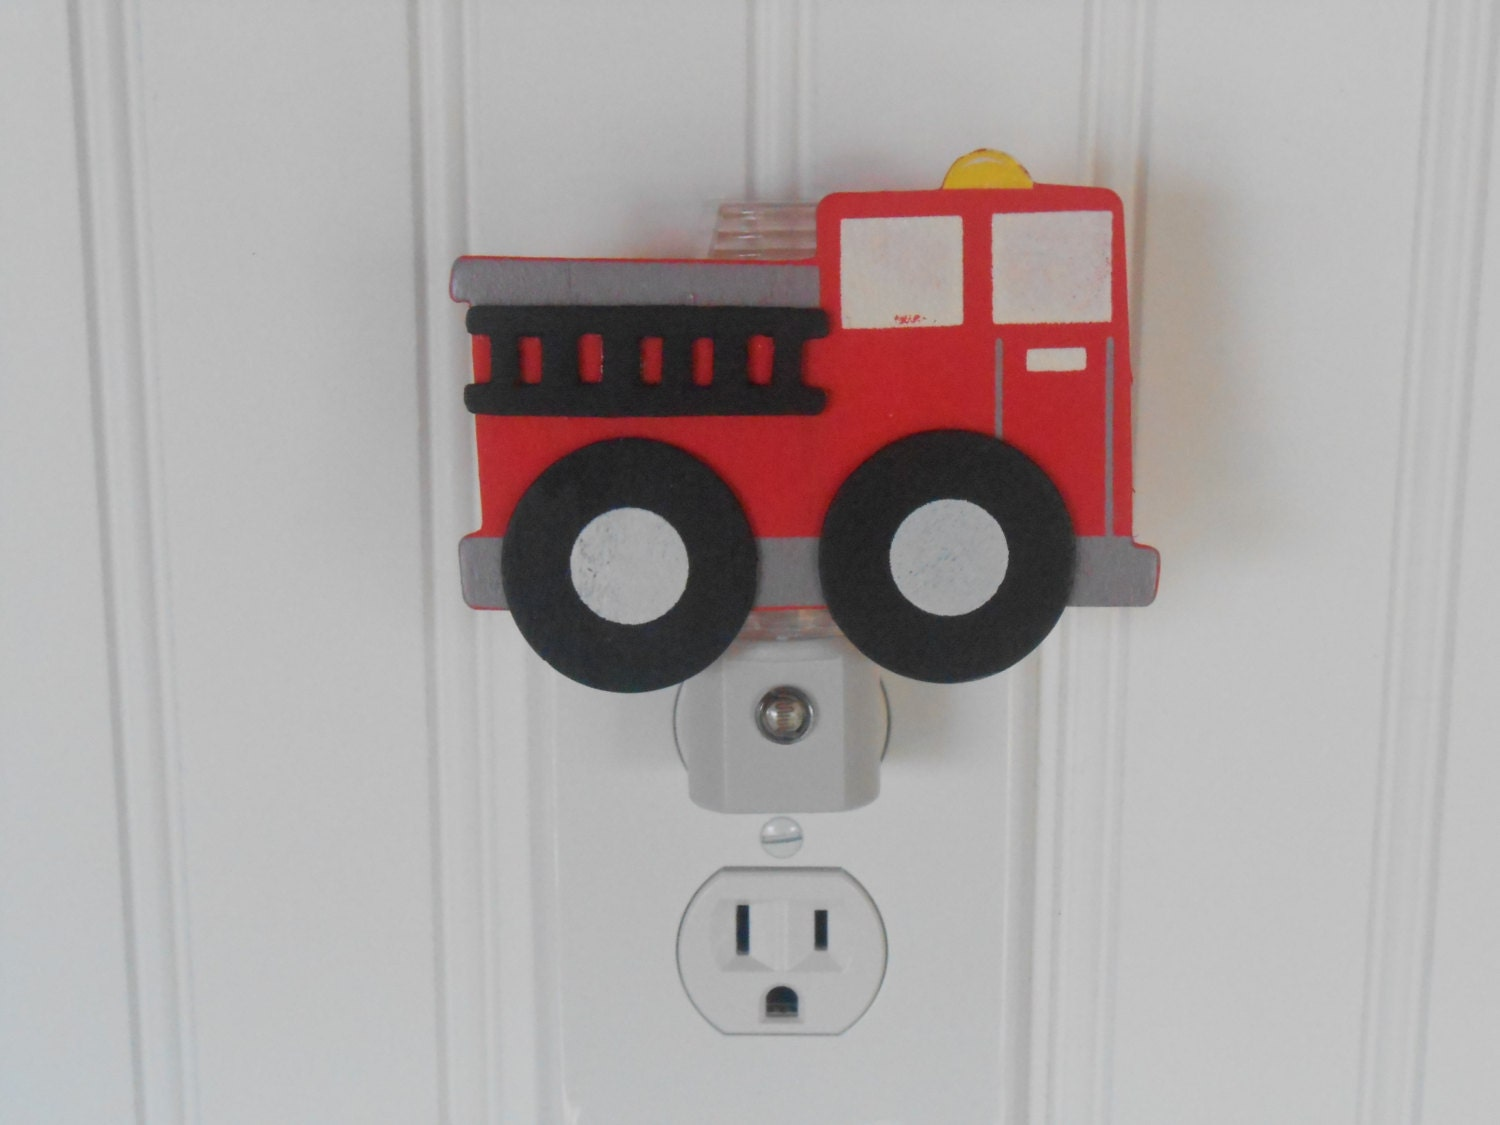 fire truck night light night lights nursery decor fire. Black Bedroom Furniture Sets. Home Design Ideas